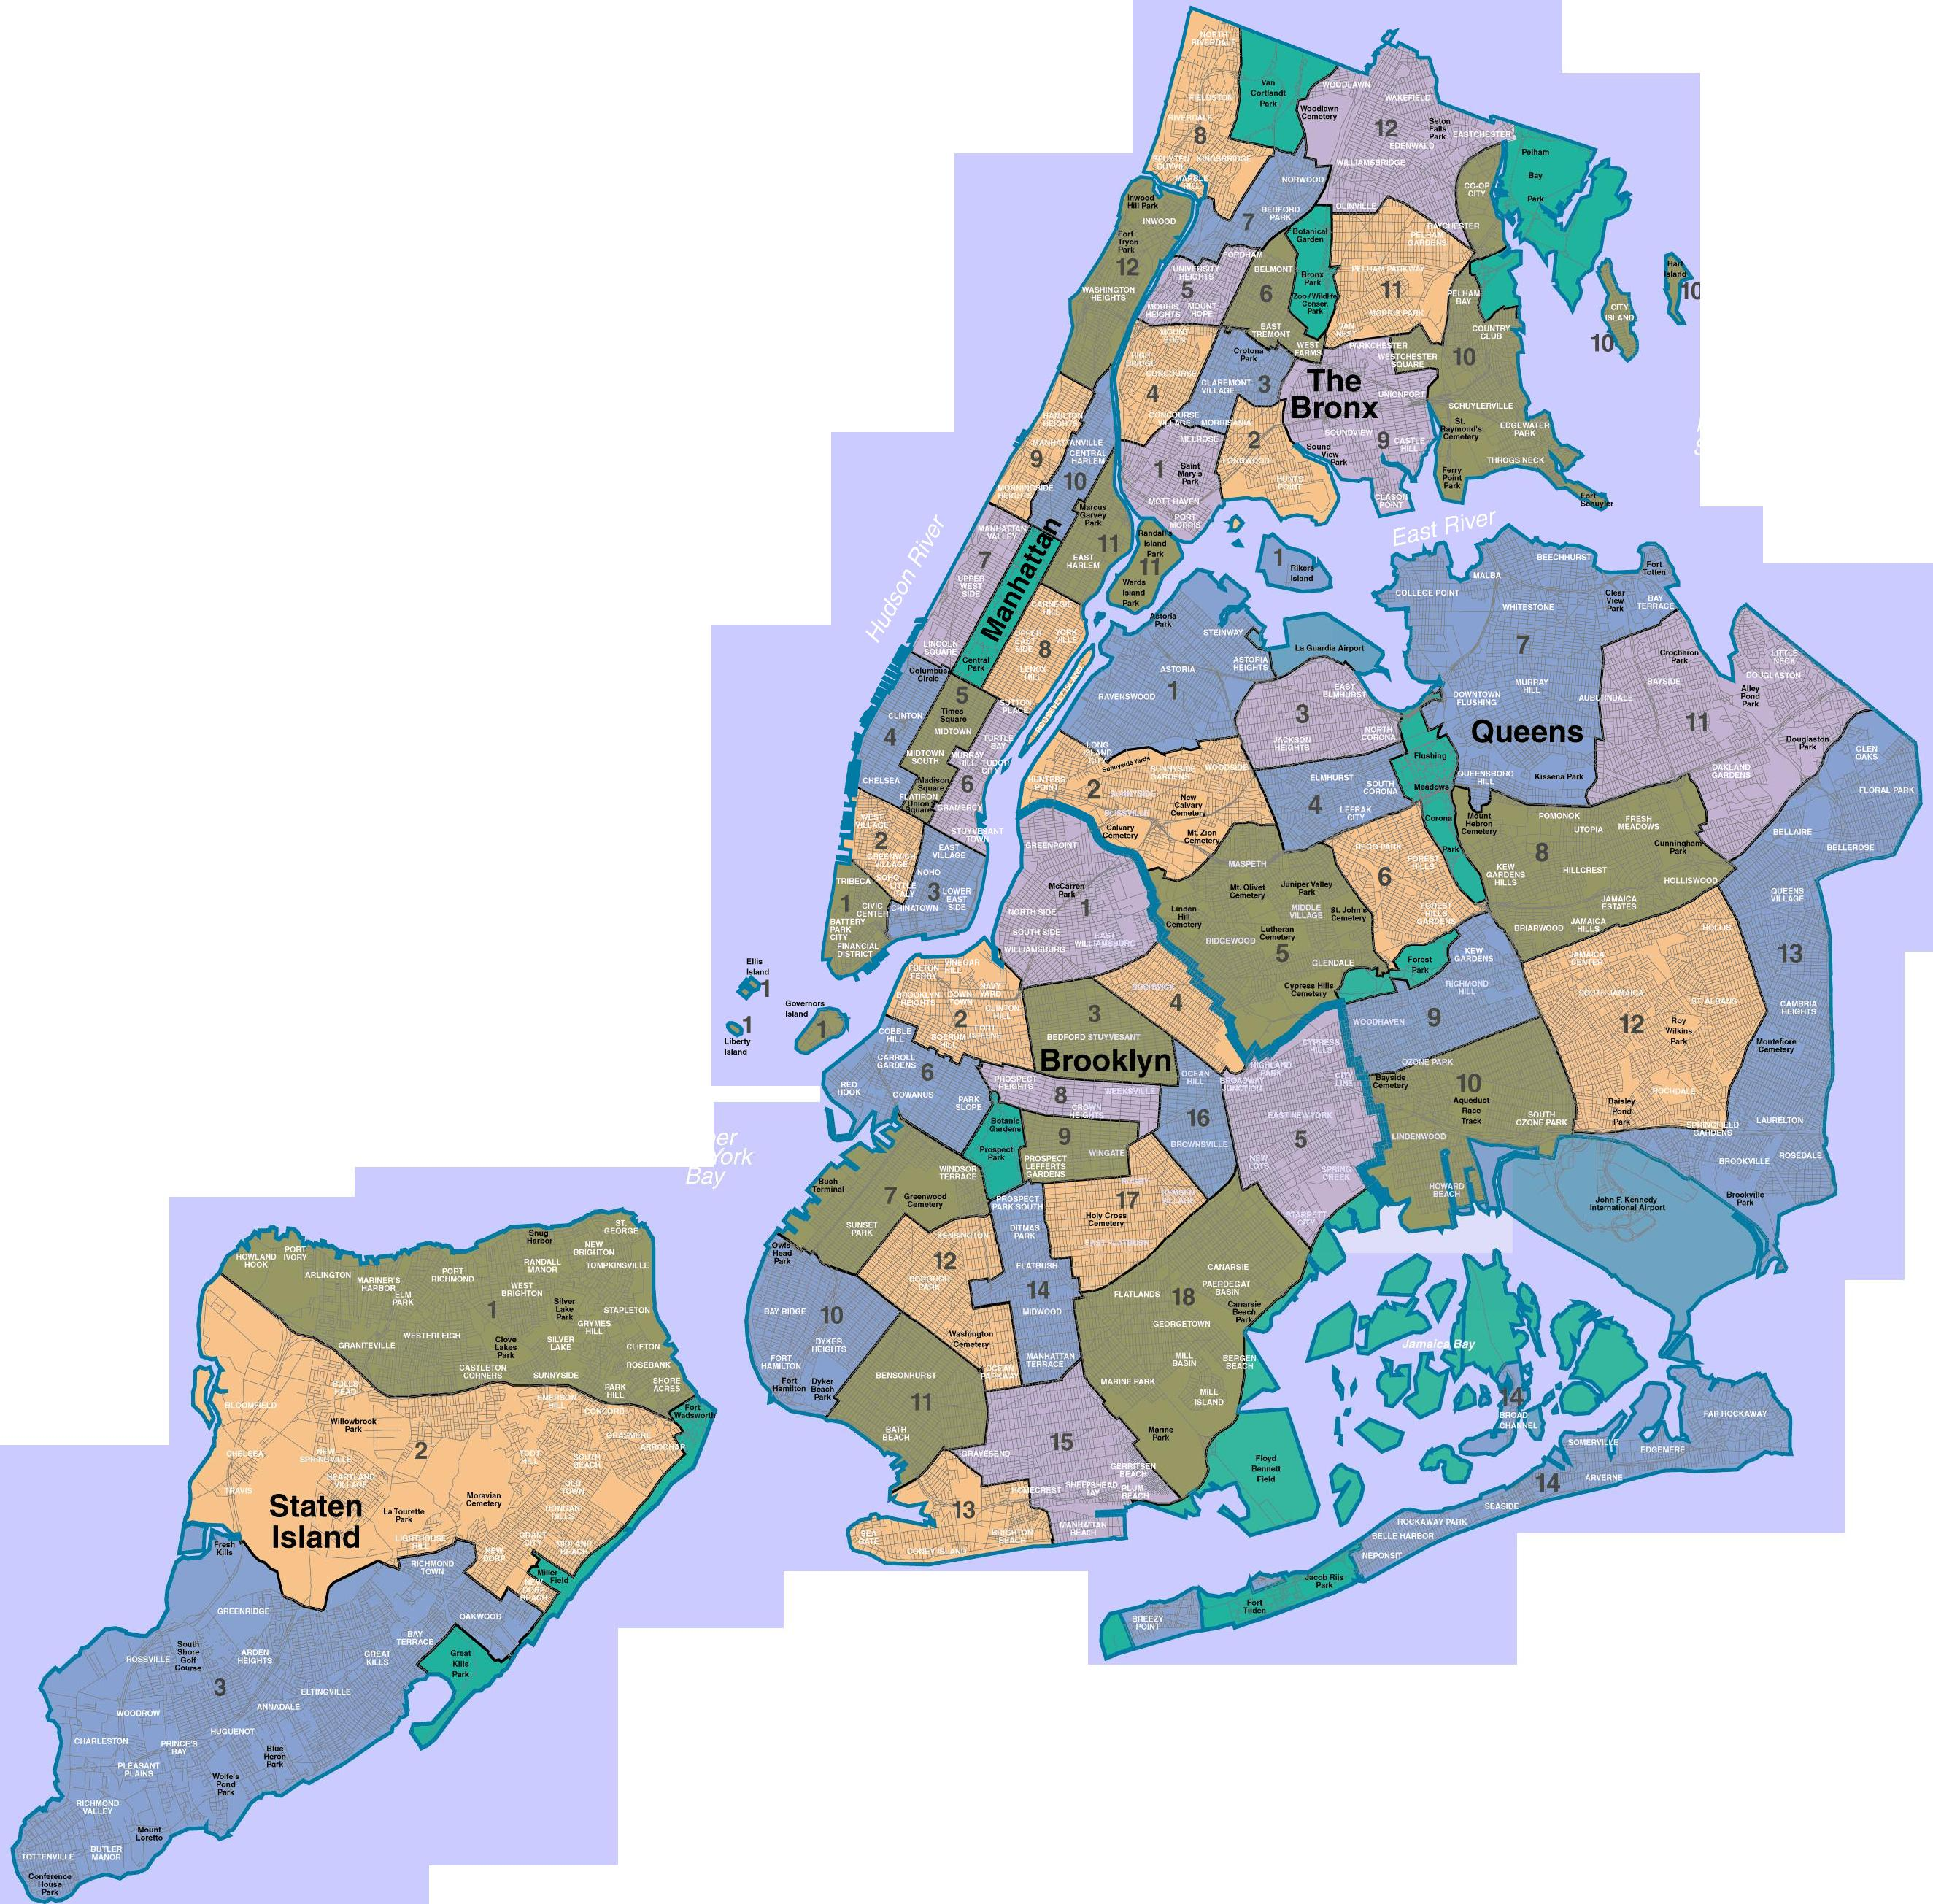 New York A City Of Neighborhoods Map New York NY  Mappery - New york neighborhood map